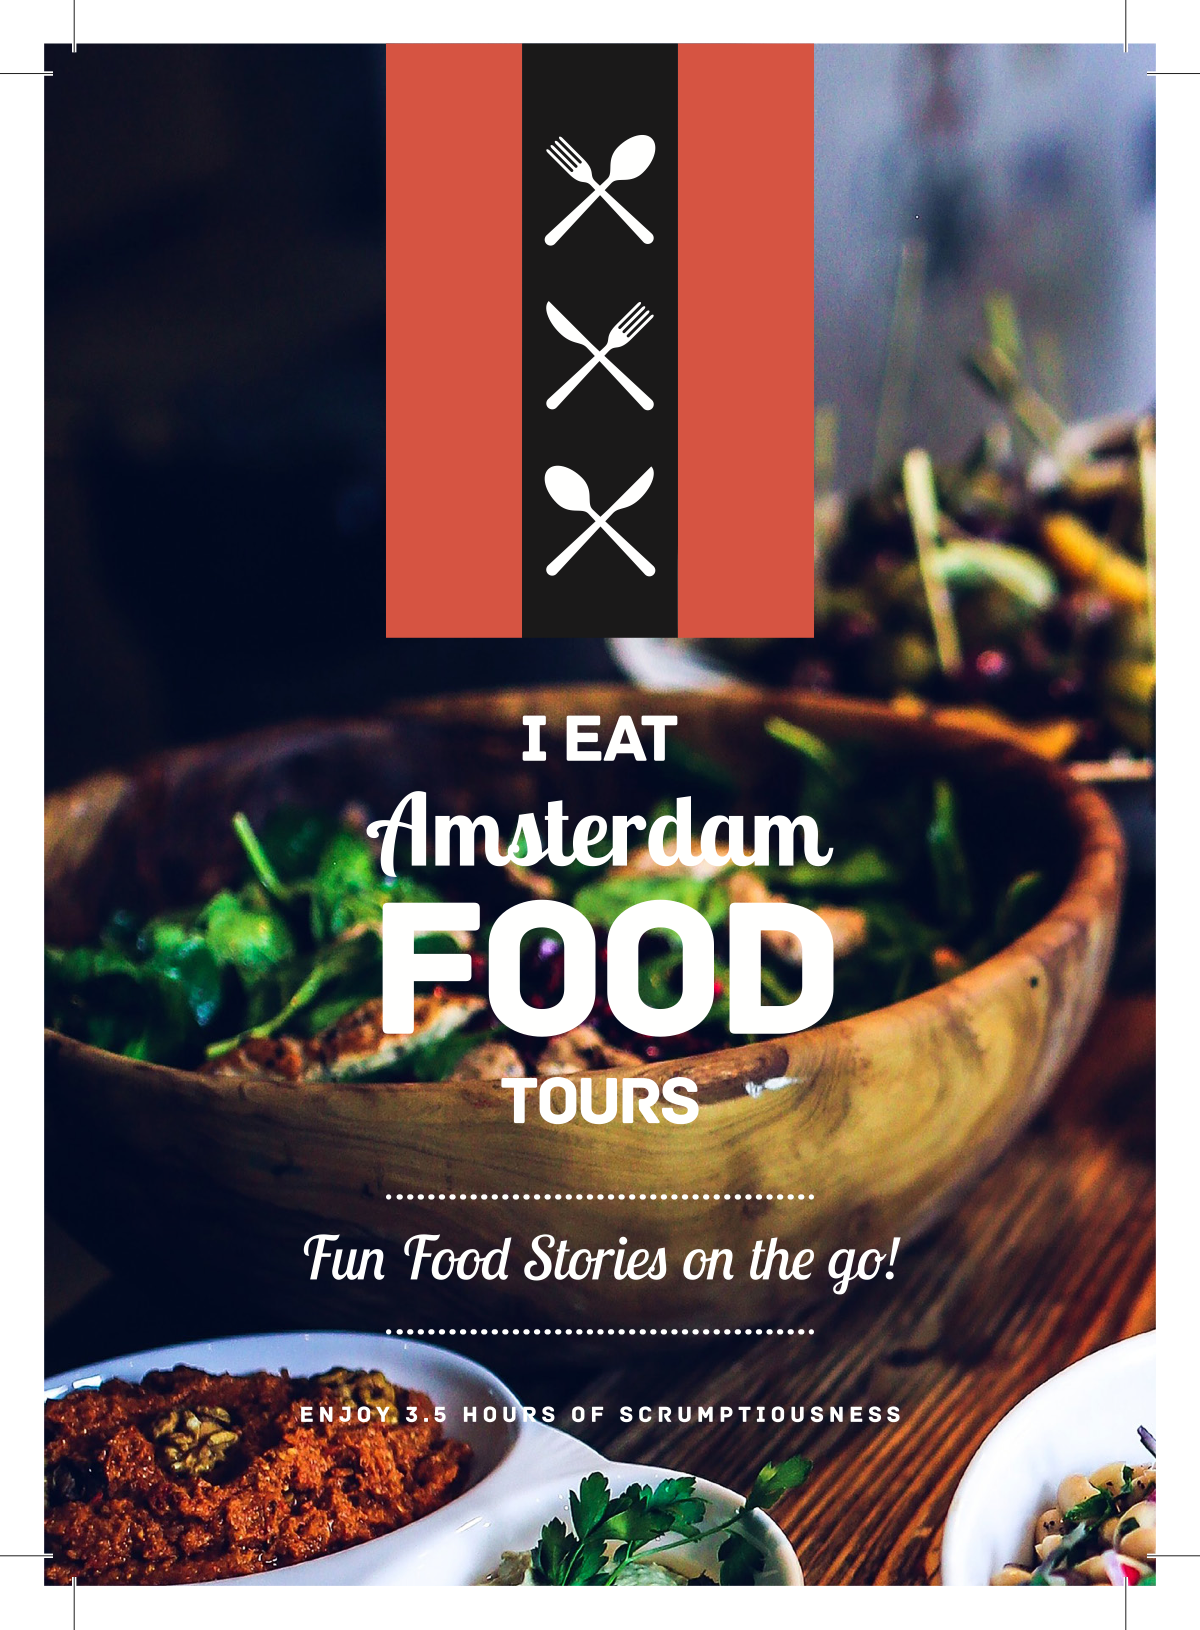 Postcard & Stickers for I Eat Amsterdam Food Tour